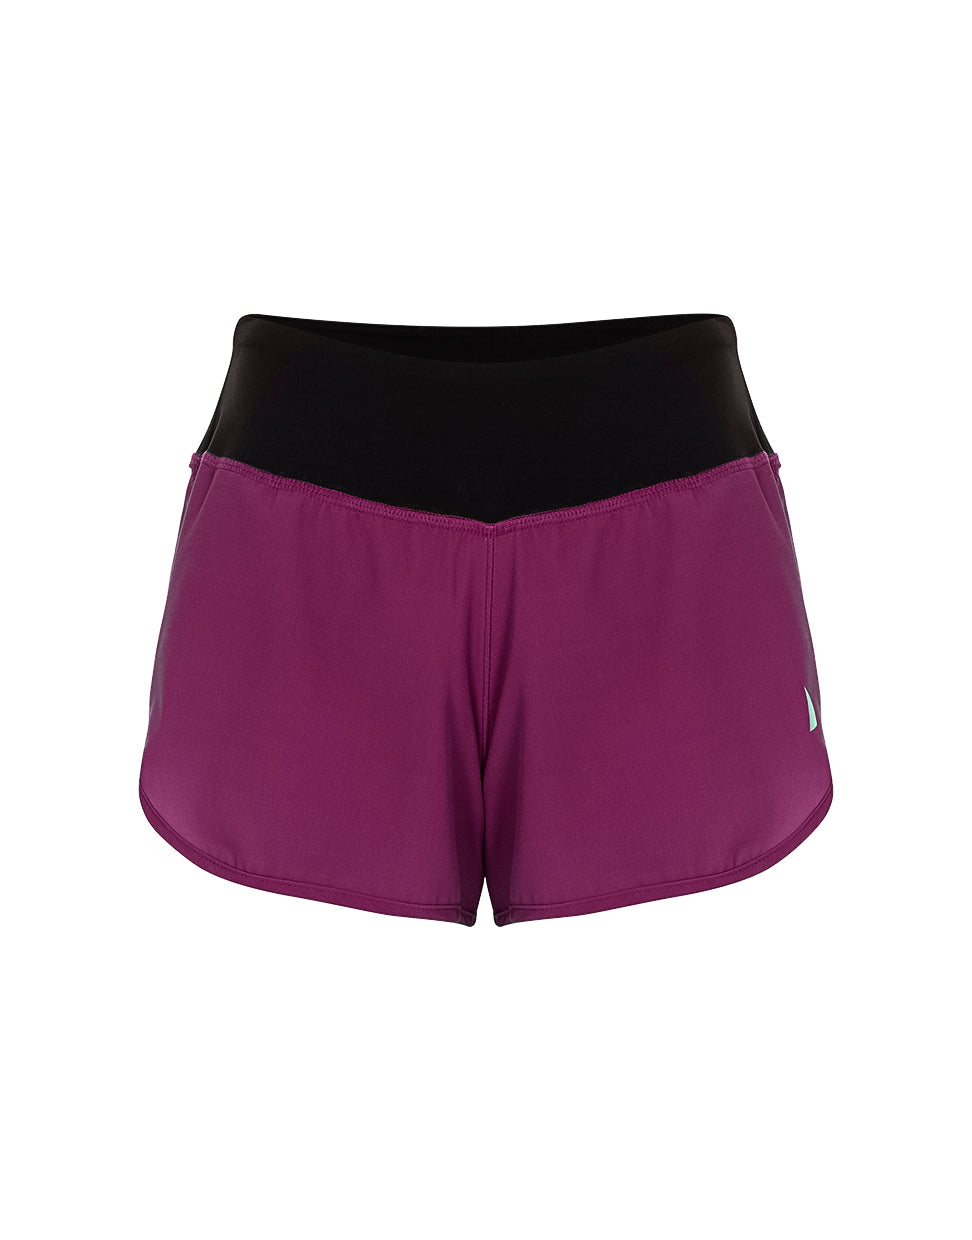 SHORTS BASIC COLOR -ROSA